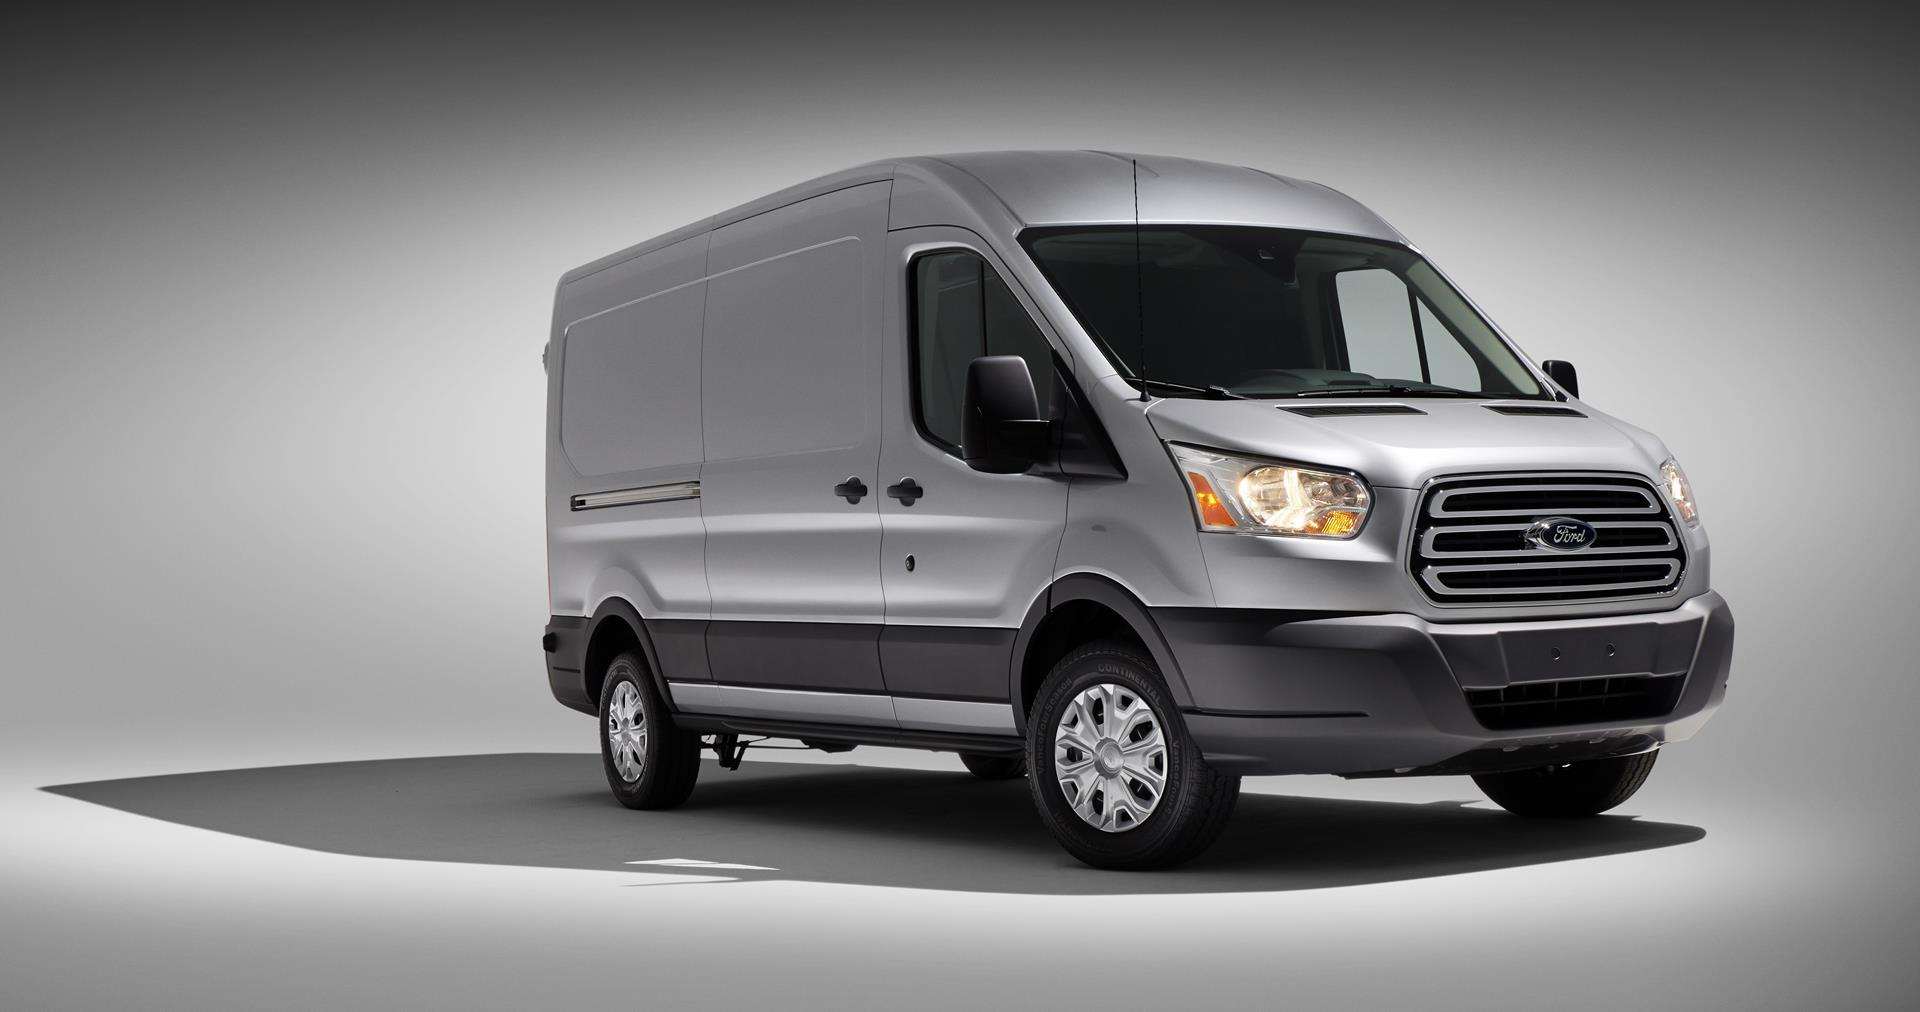 2016 ford transit technical specifications and data. Black Bedroom Furniture Sets. Home Design Ideas